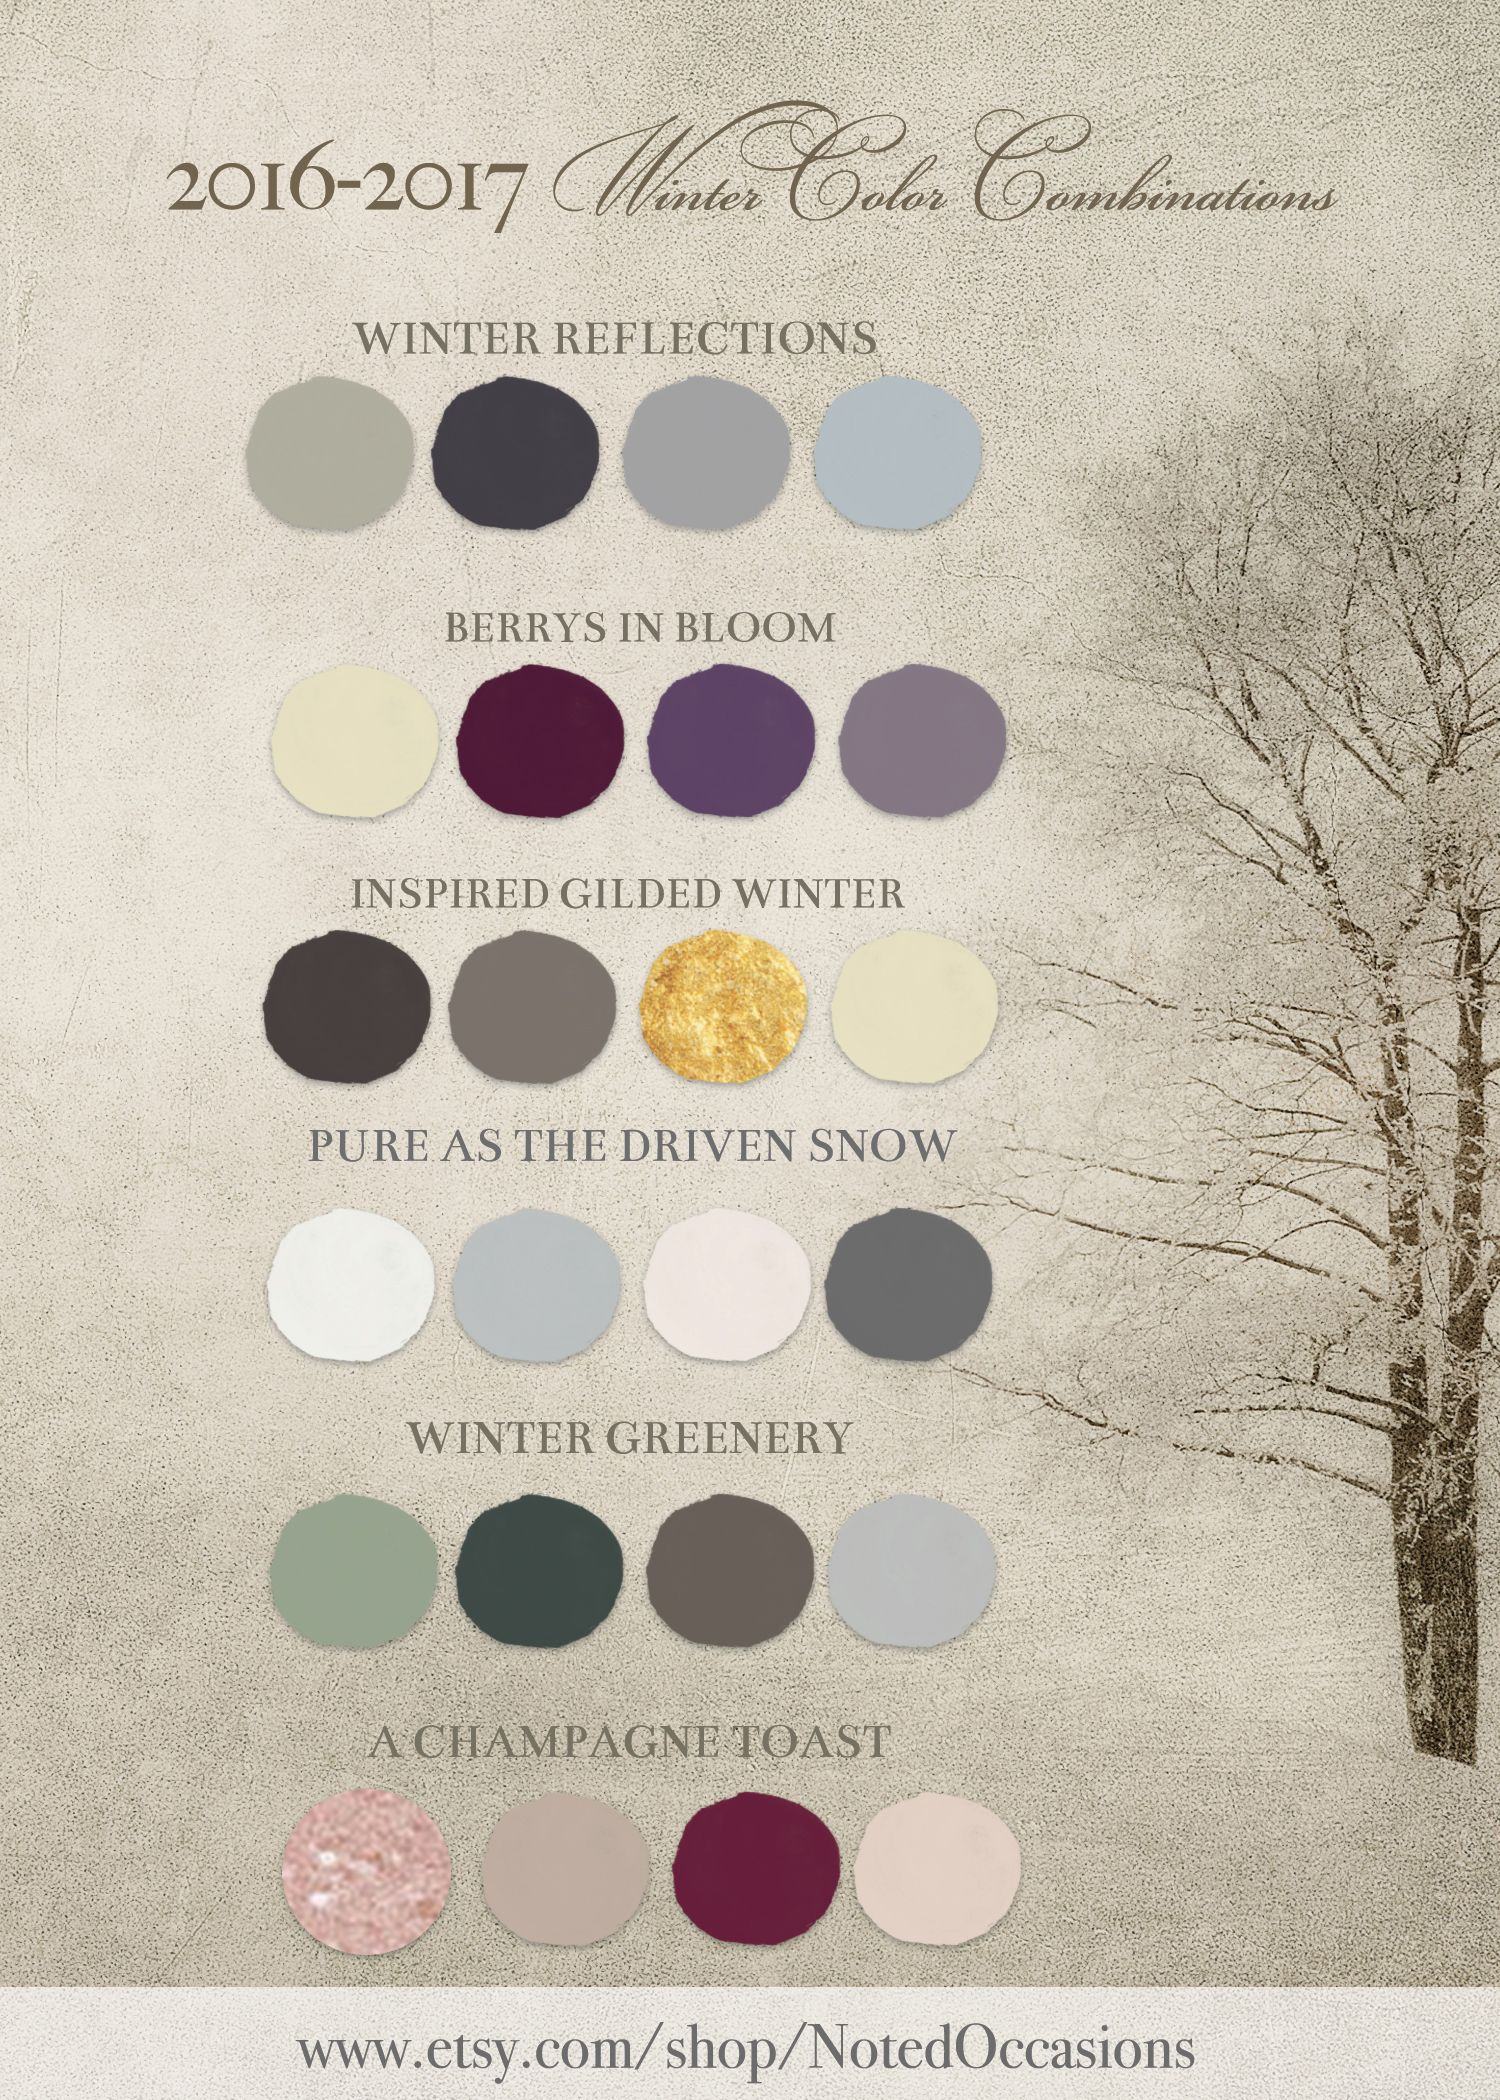 2016 winter wedding color combinations and trends for 2017 winter ...